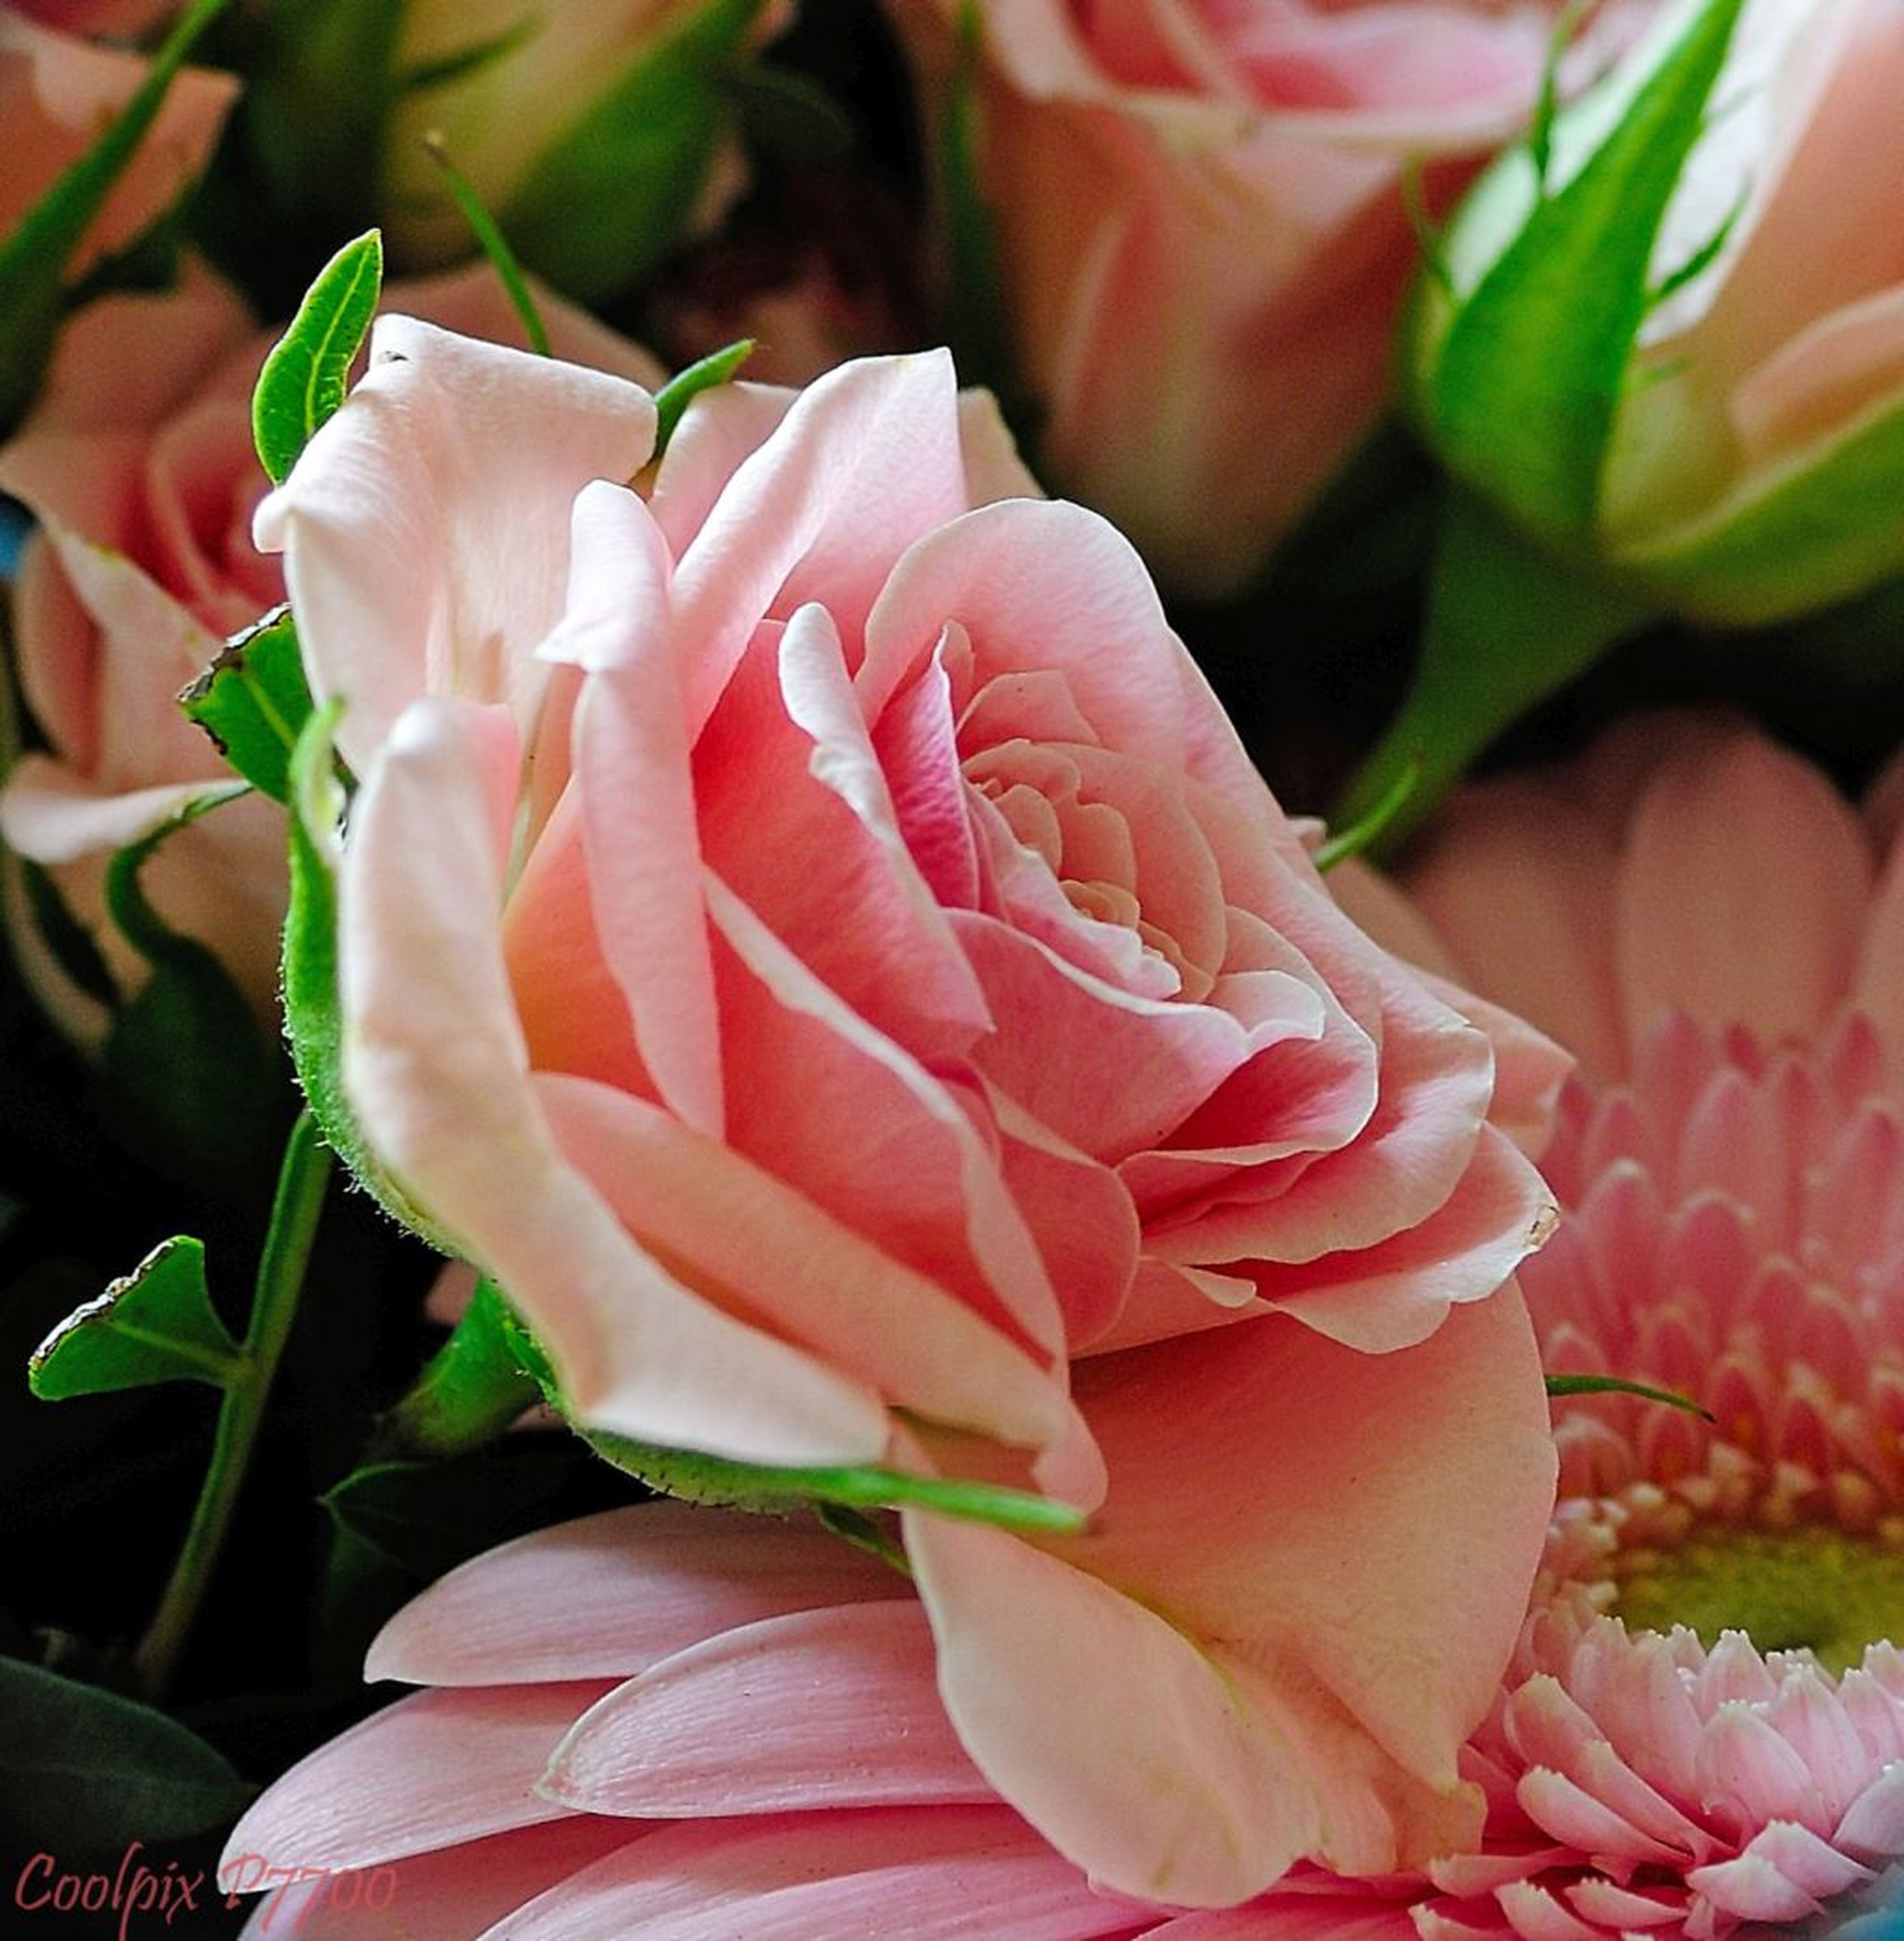 flower, petal, freshness, flower head, fragility, rose - flower, beauty in nature, close-up, growth, nature, rose, plant, blooming, pink color, focus on foreground, indoors, leaf, in bloom, blossom, single flower